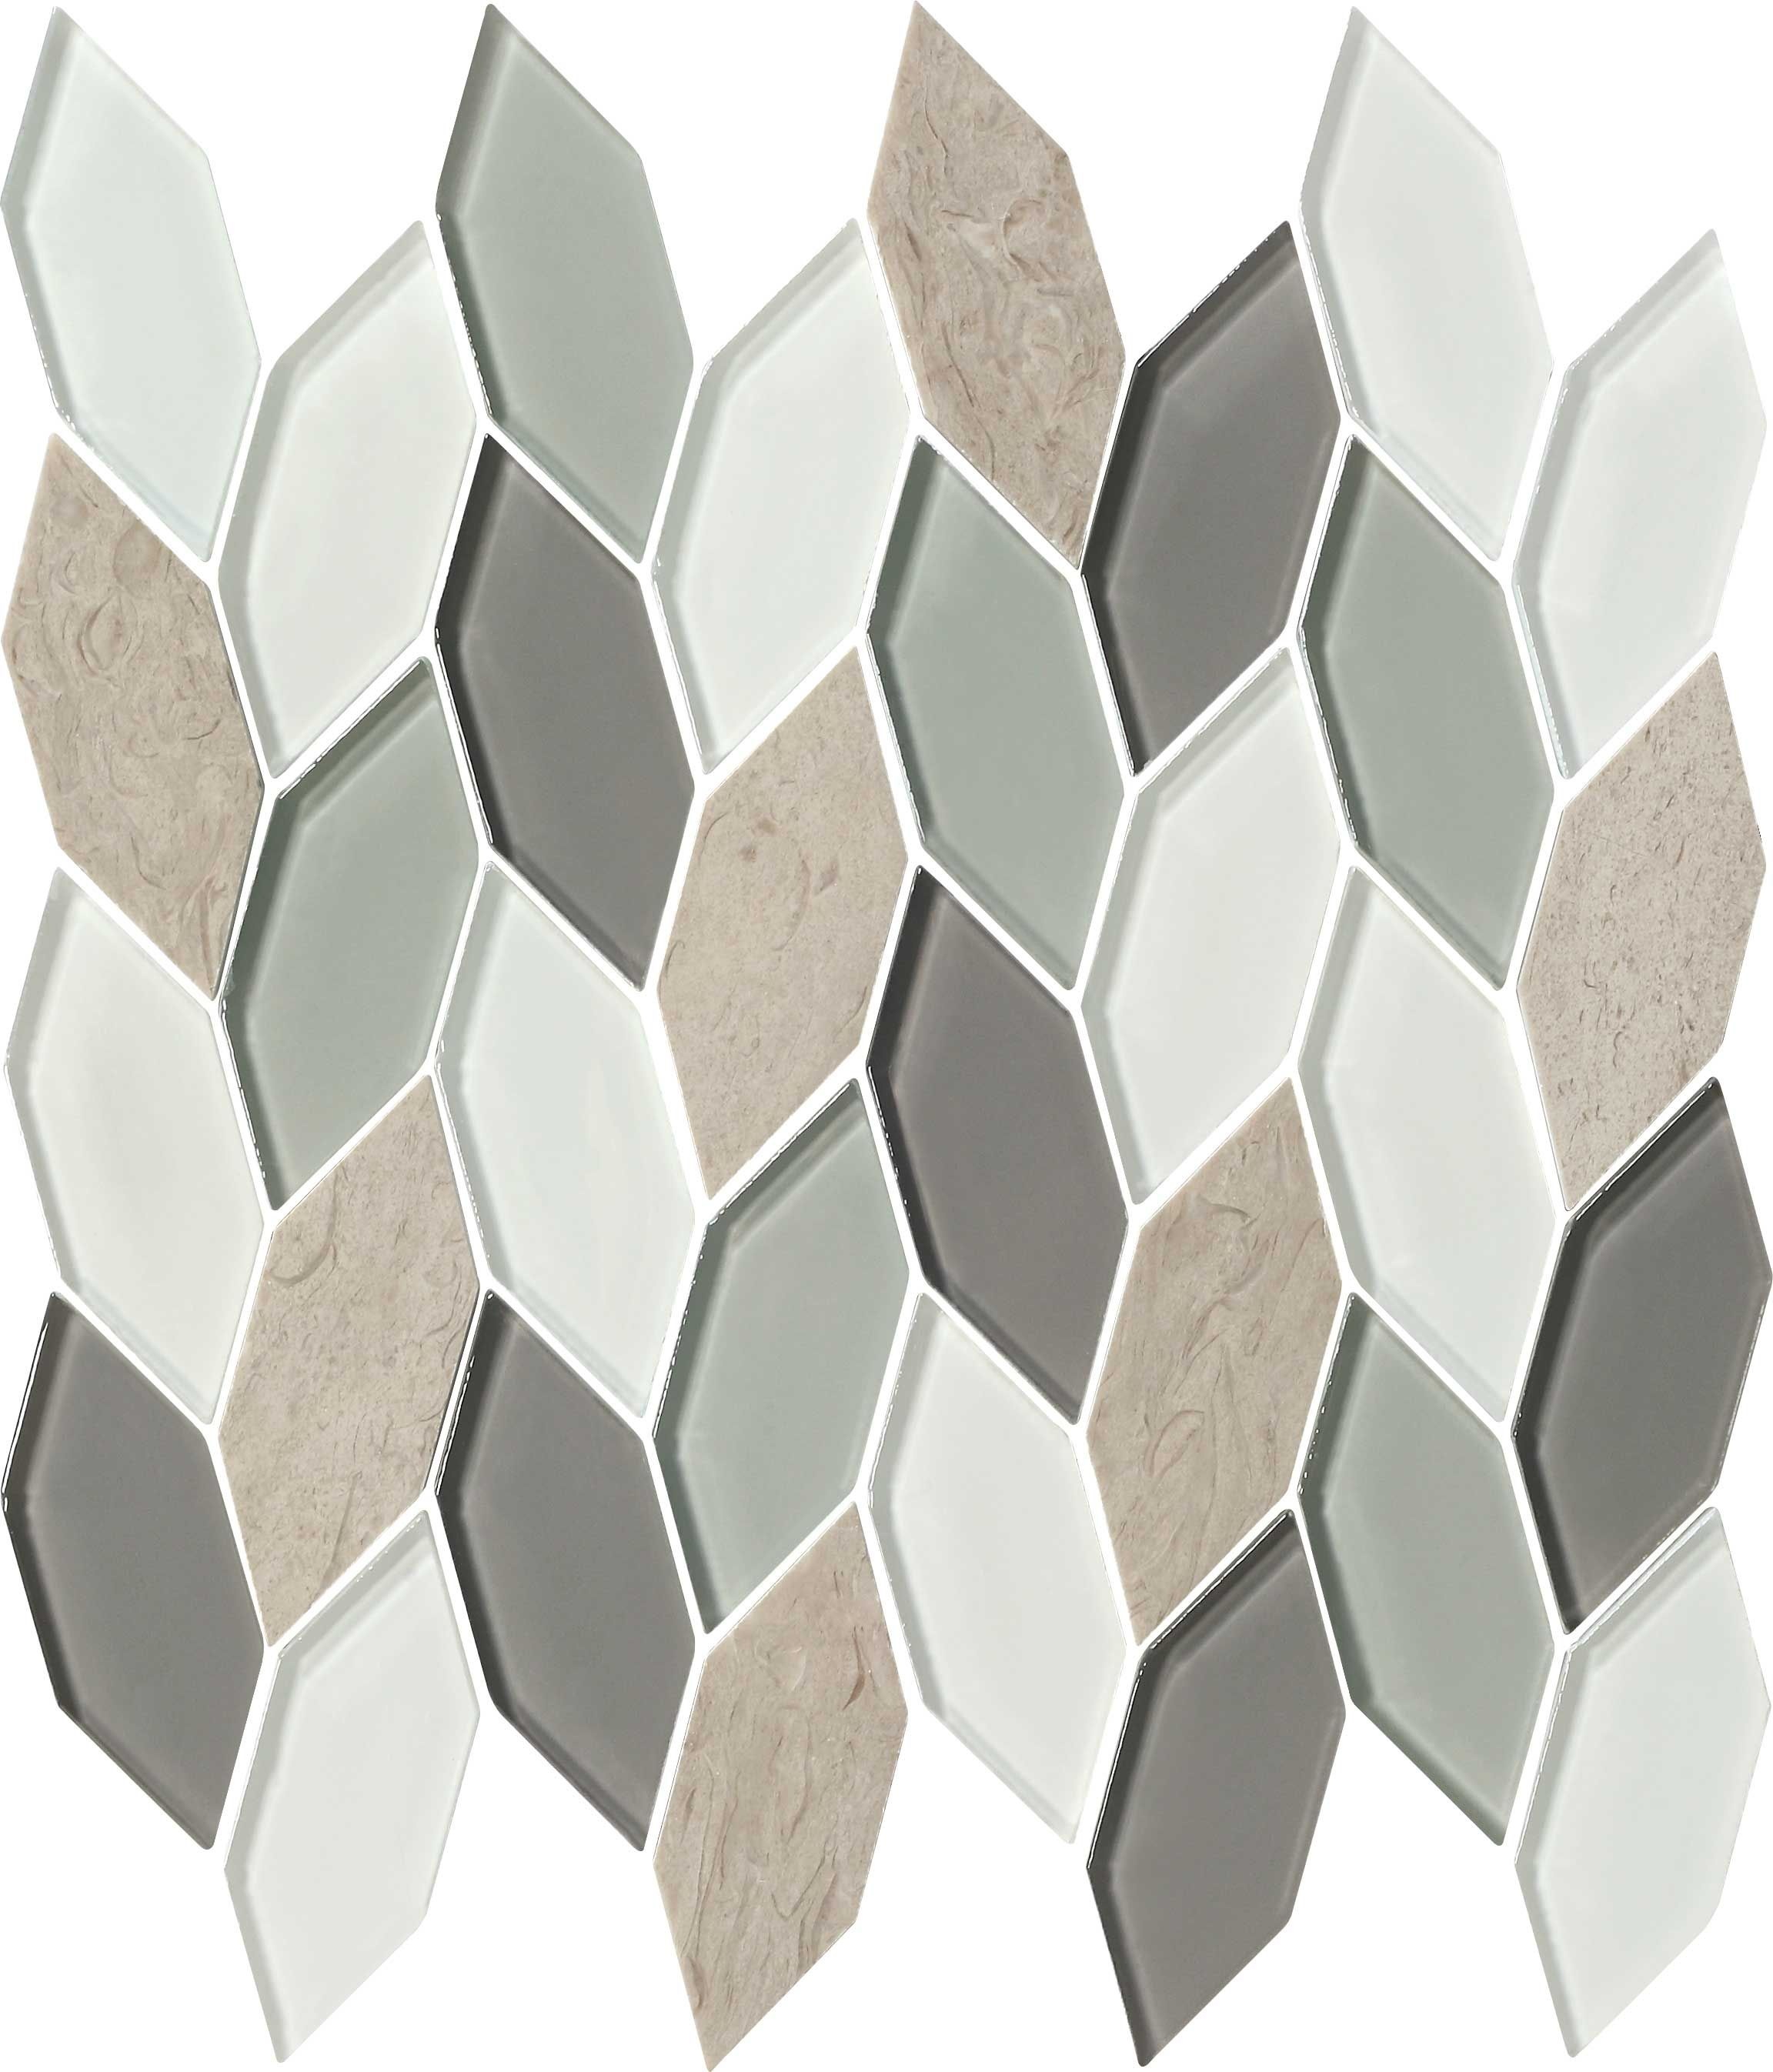 View our online category of kitchen backsplash glass tiles and ceramic kitchen tiles for backsplash